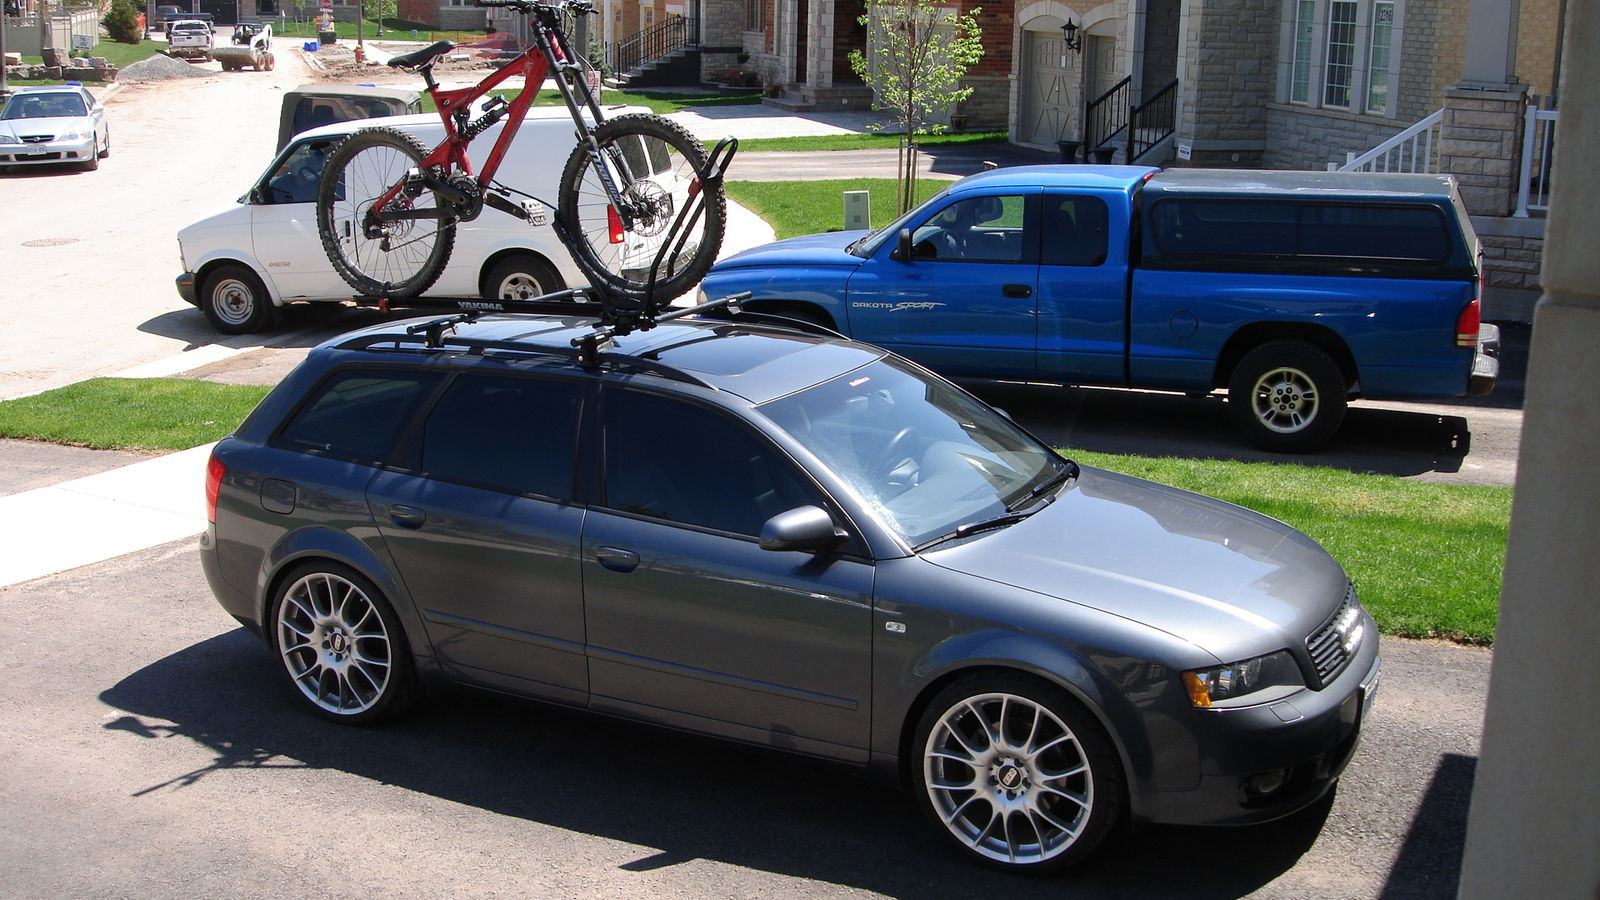 audi q5 bike rack, chevrolet colorado bike rack, volkswagen cc bike rack, buick riviera bike rack, suzuki grand vitara bike rack, volvo c70 bike rack, audi a5 cabriolet bike rack, infiniti ex35 bike rack, honda civic bike rack, nissan 300zx bike rack, honda cr-z bike rack, 335i bike rack, bmw e30 bike rack, rs4 bike rack, mitsubishi lancer bike rack, honda del sol bike rack, convertible bike rack, mercedes glk bike rack, pontiac gto bike rack, mercedes s class bike rack, on audi a4 bike rack